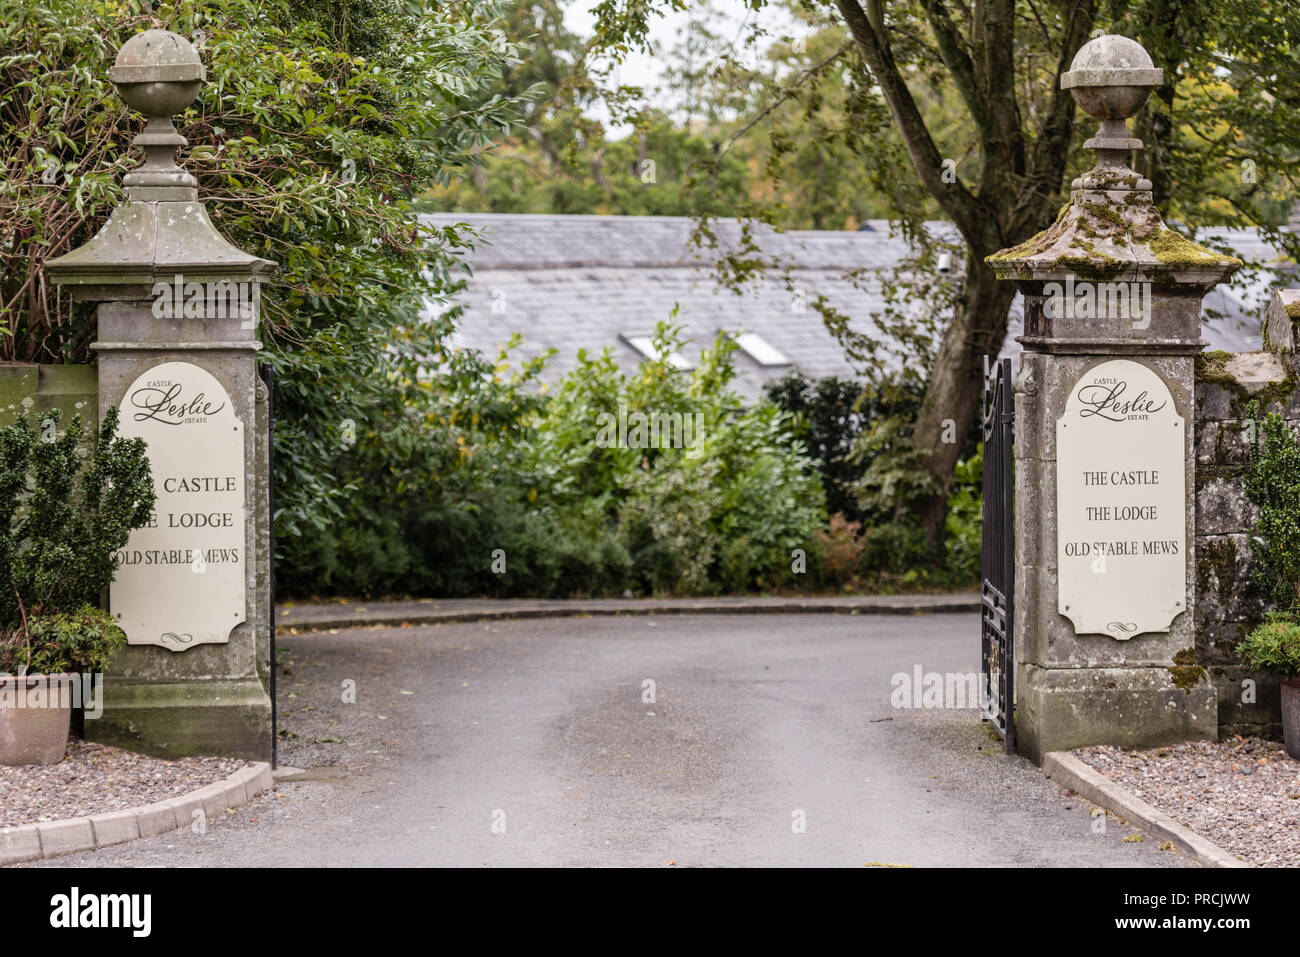 Entrance to the estate of Castle Leslie. Glaslough, County Monaghan, Ireland. - Stock Image